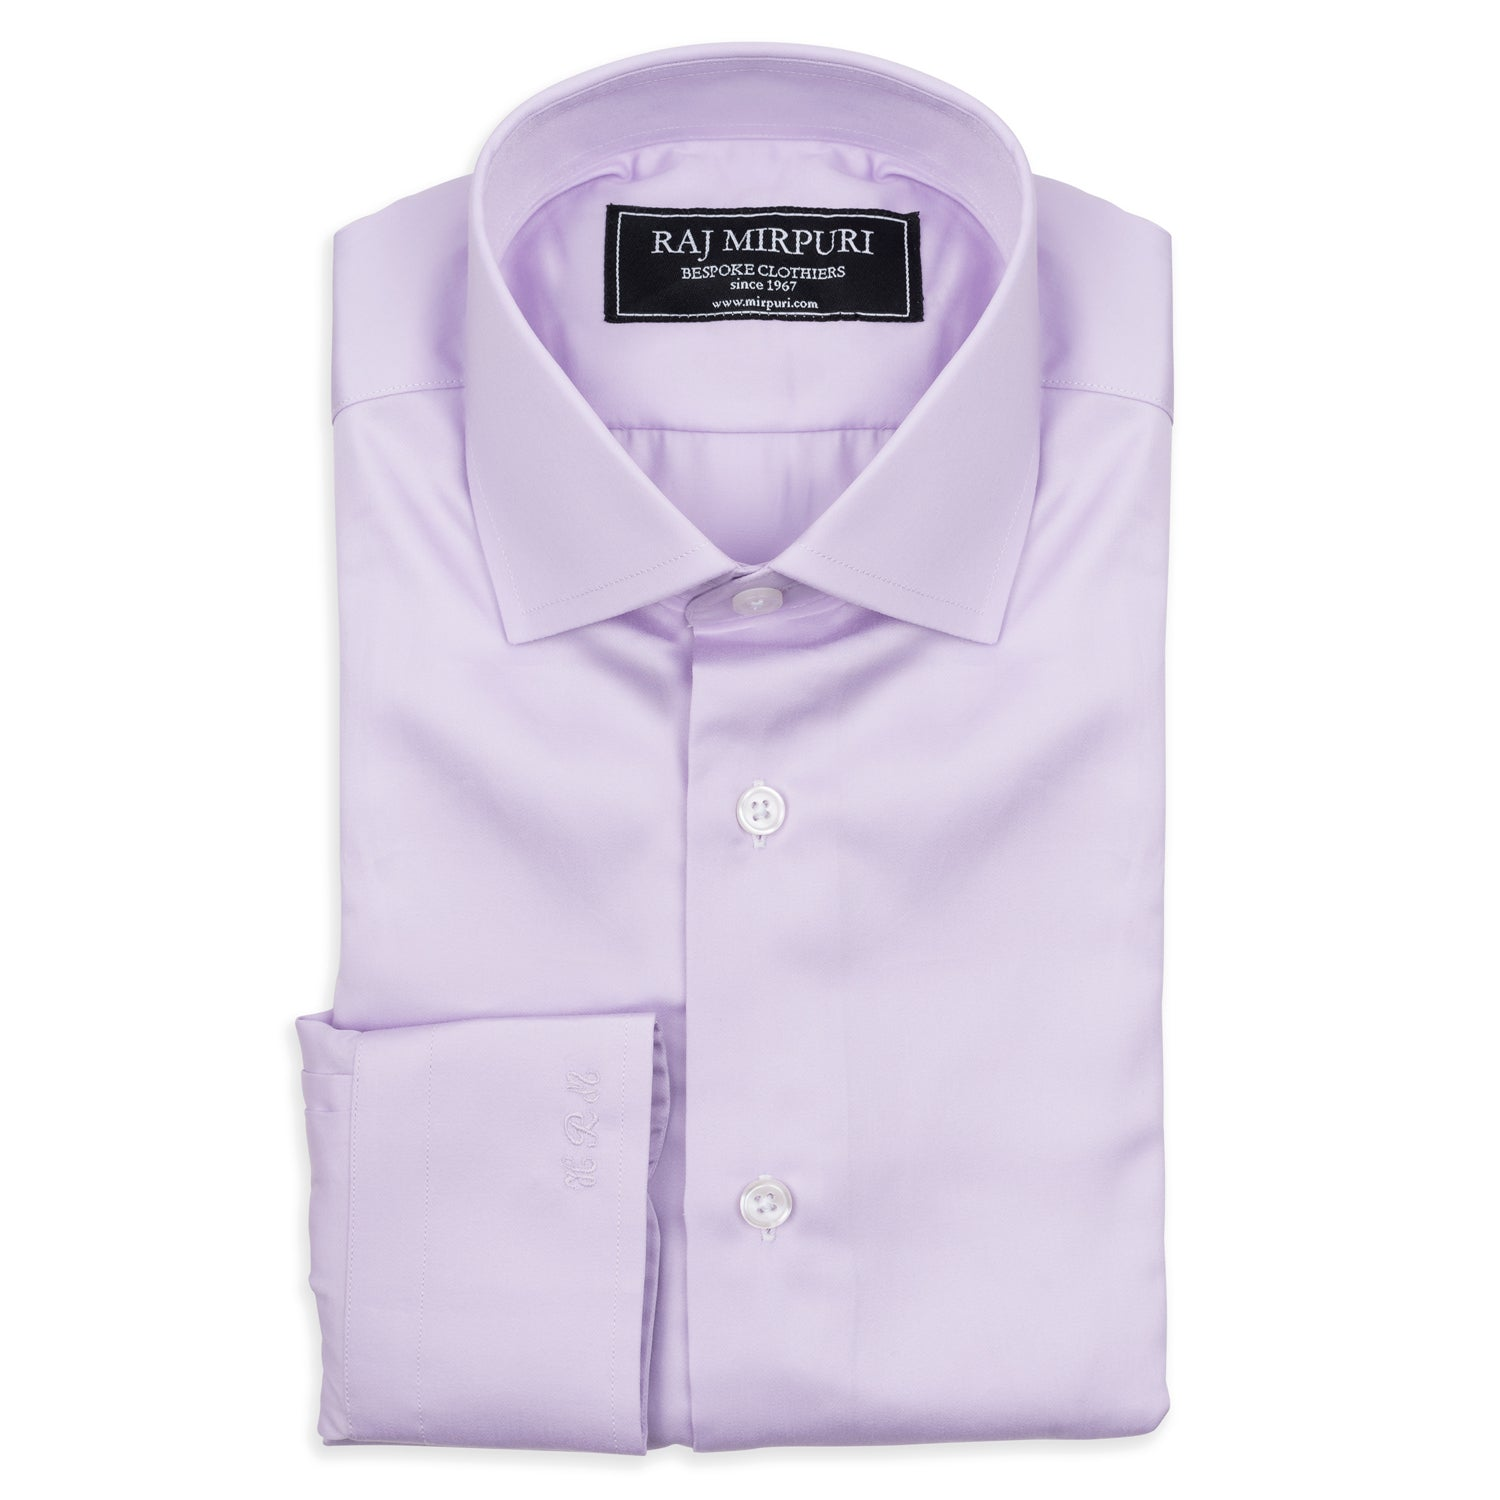 Bespoke - Lavender Tailored Shirt